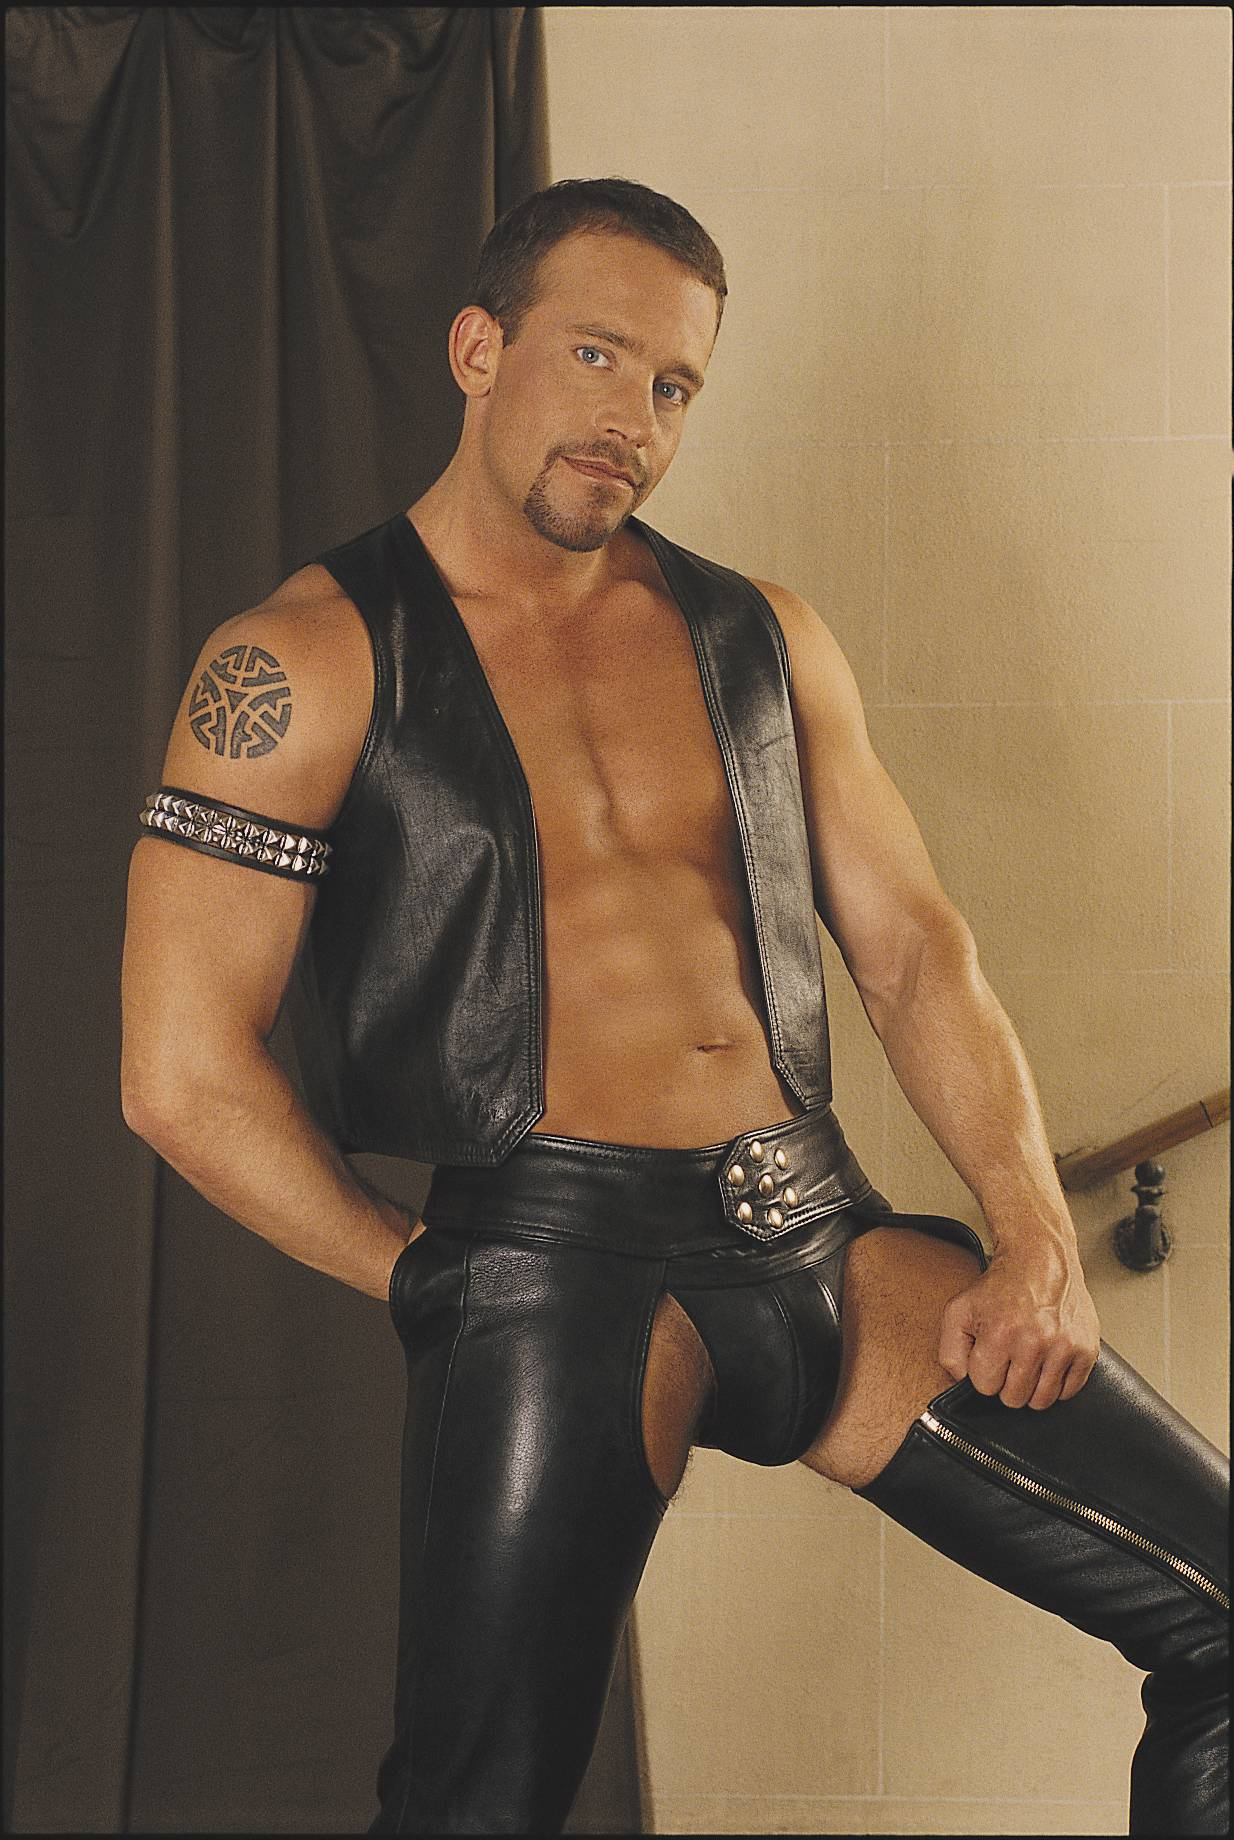 Shockwave leather gay